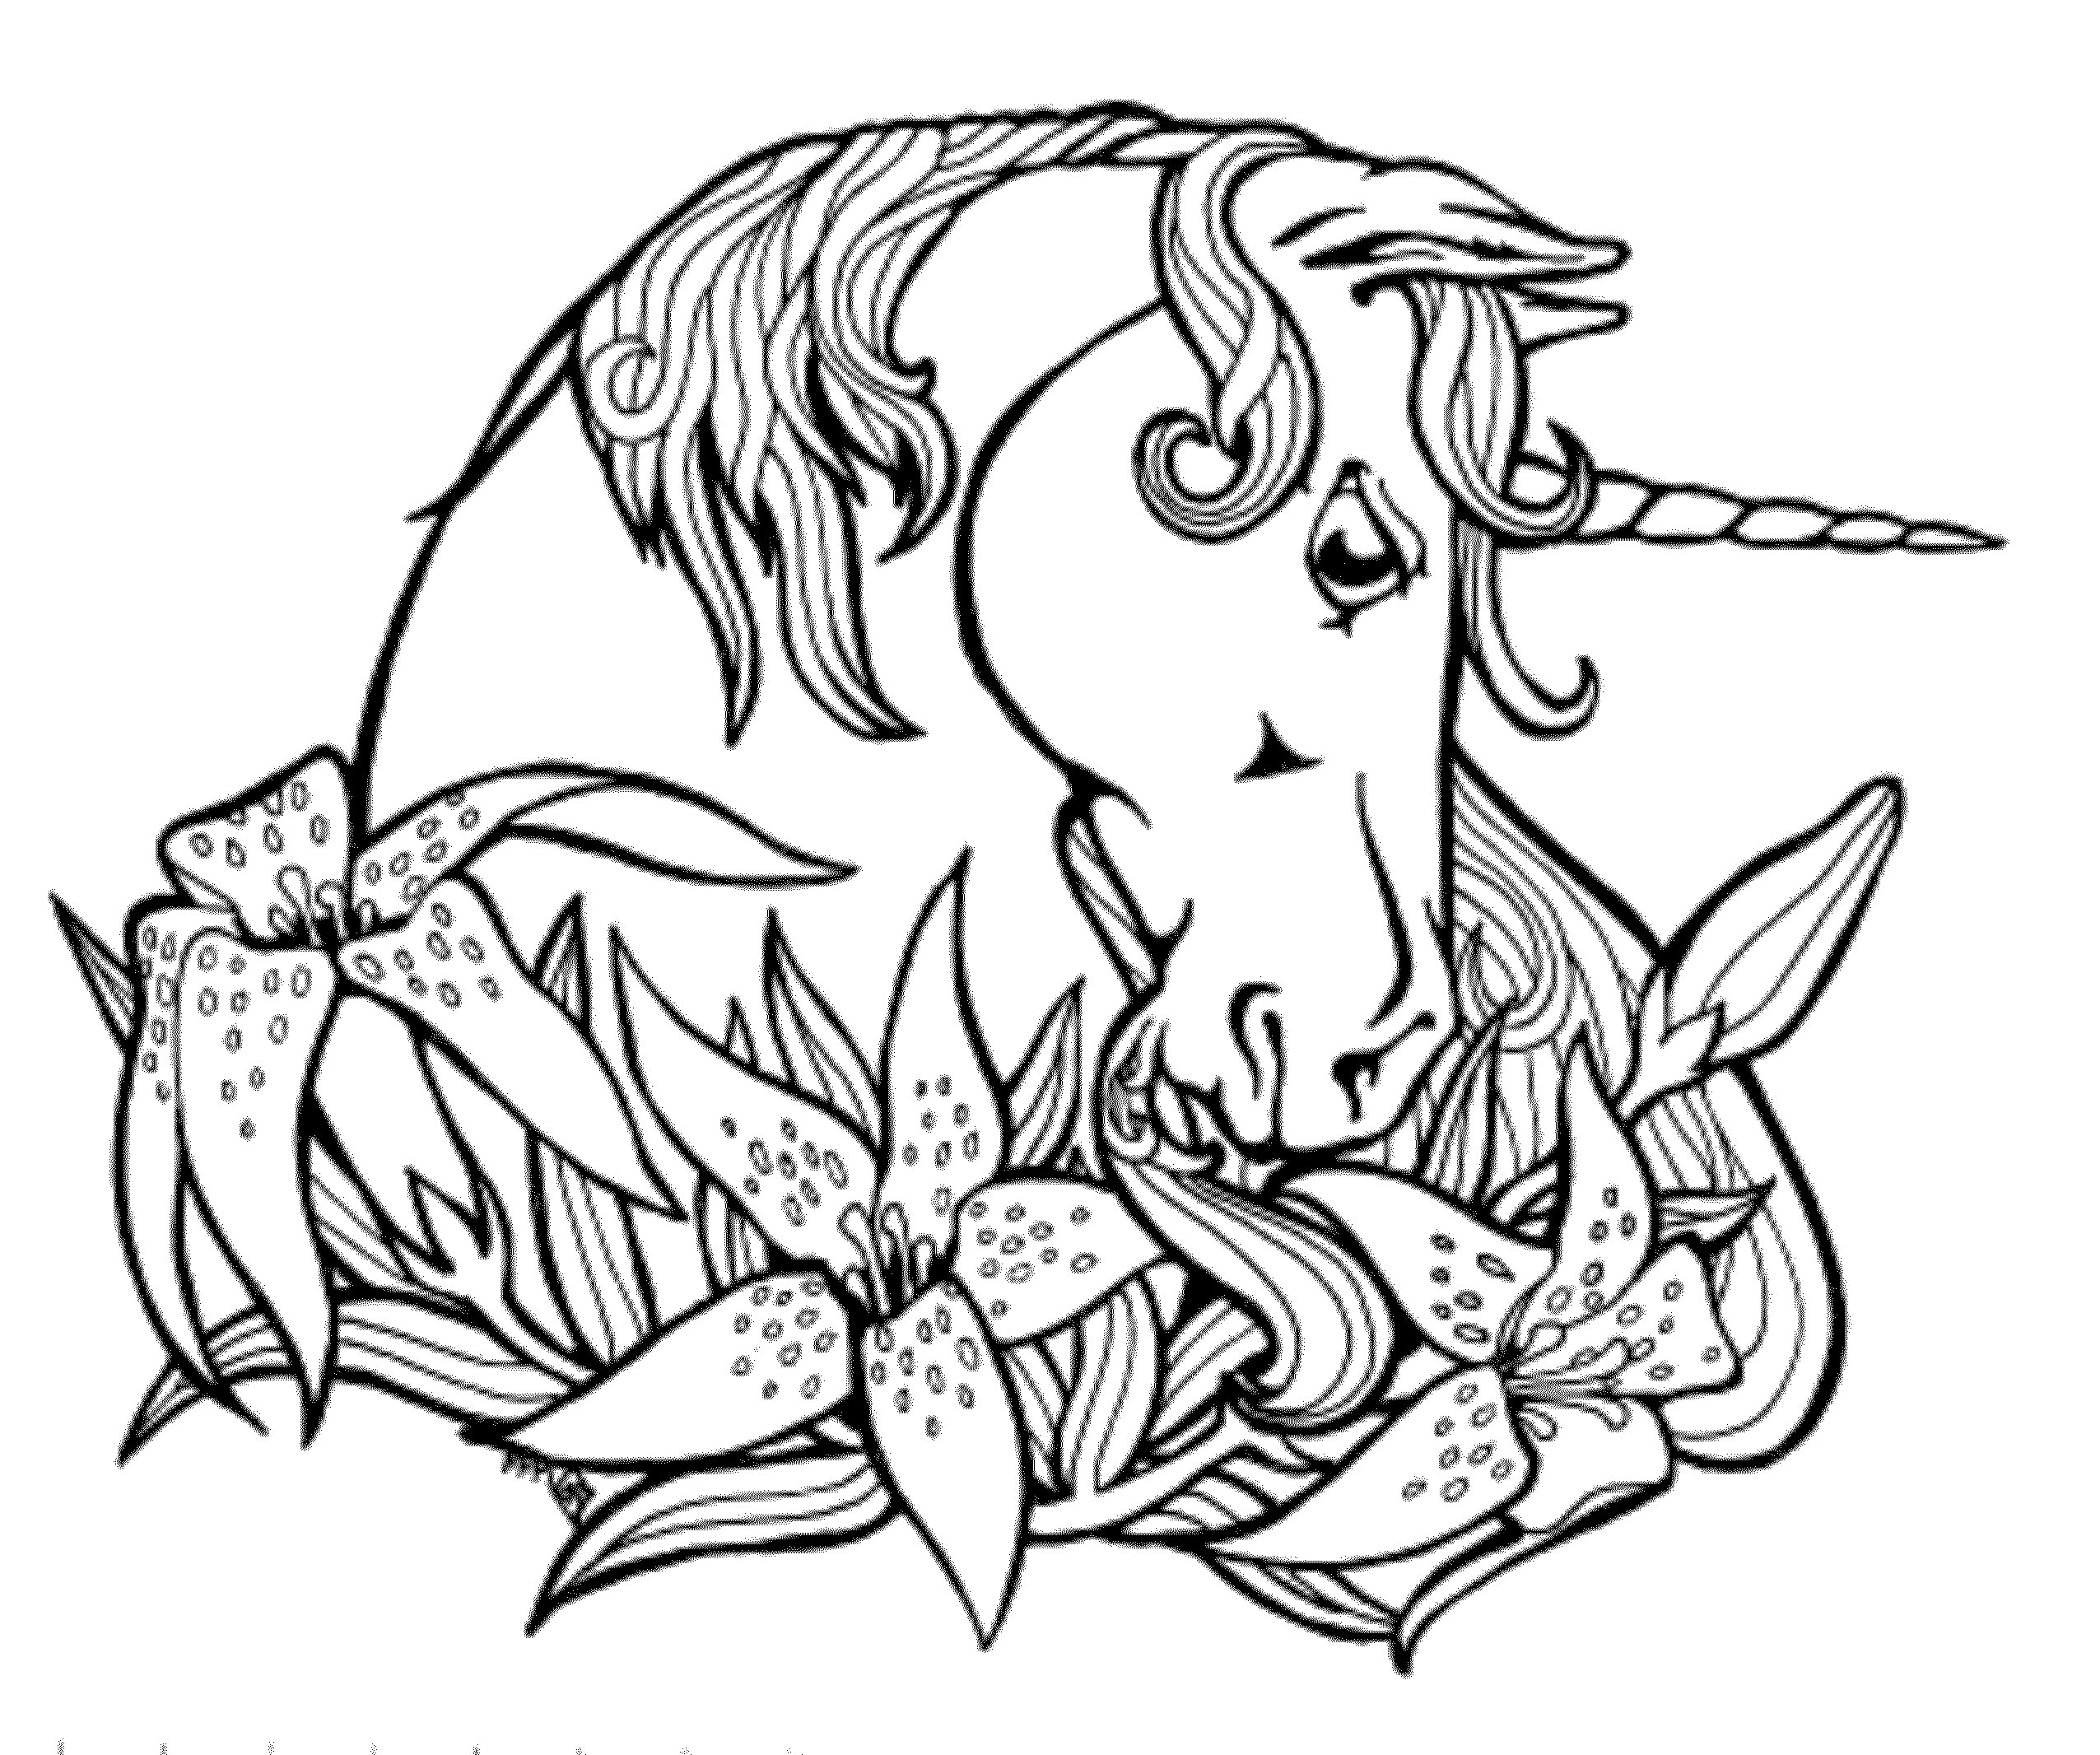 coloring unicorn kids drawing downloadable unicorn colouring page michael o39mara books kids coloring unicorn drawing